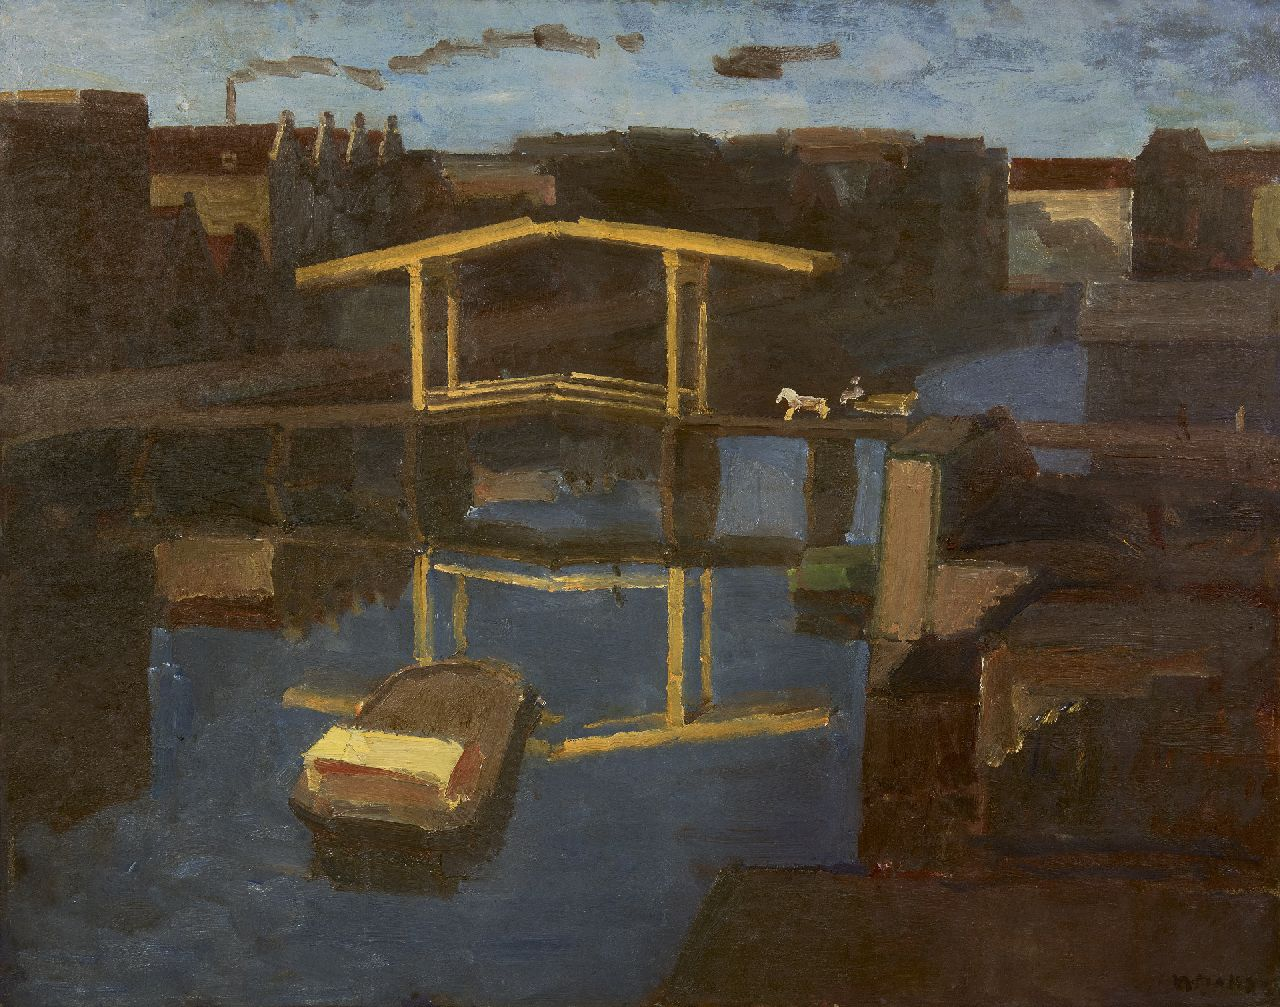 Maks C.J.  | Cornelis Johannes 'Kees' Maks | Paintings offered for sale | The drawbridge (view from  the artist's studio on the Prinseneiland, Amsterdam), oil on canvas 79.4 x 100.0 cm, signed l.r.